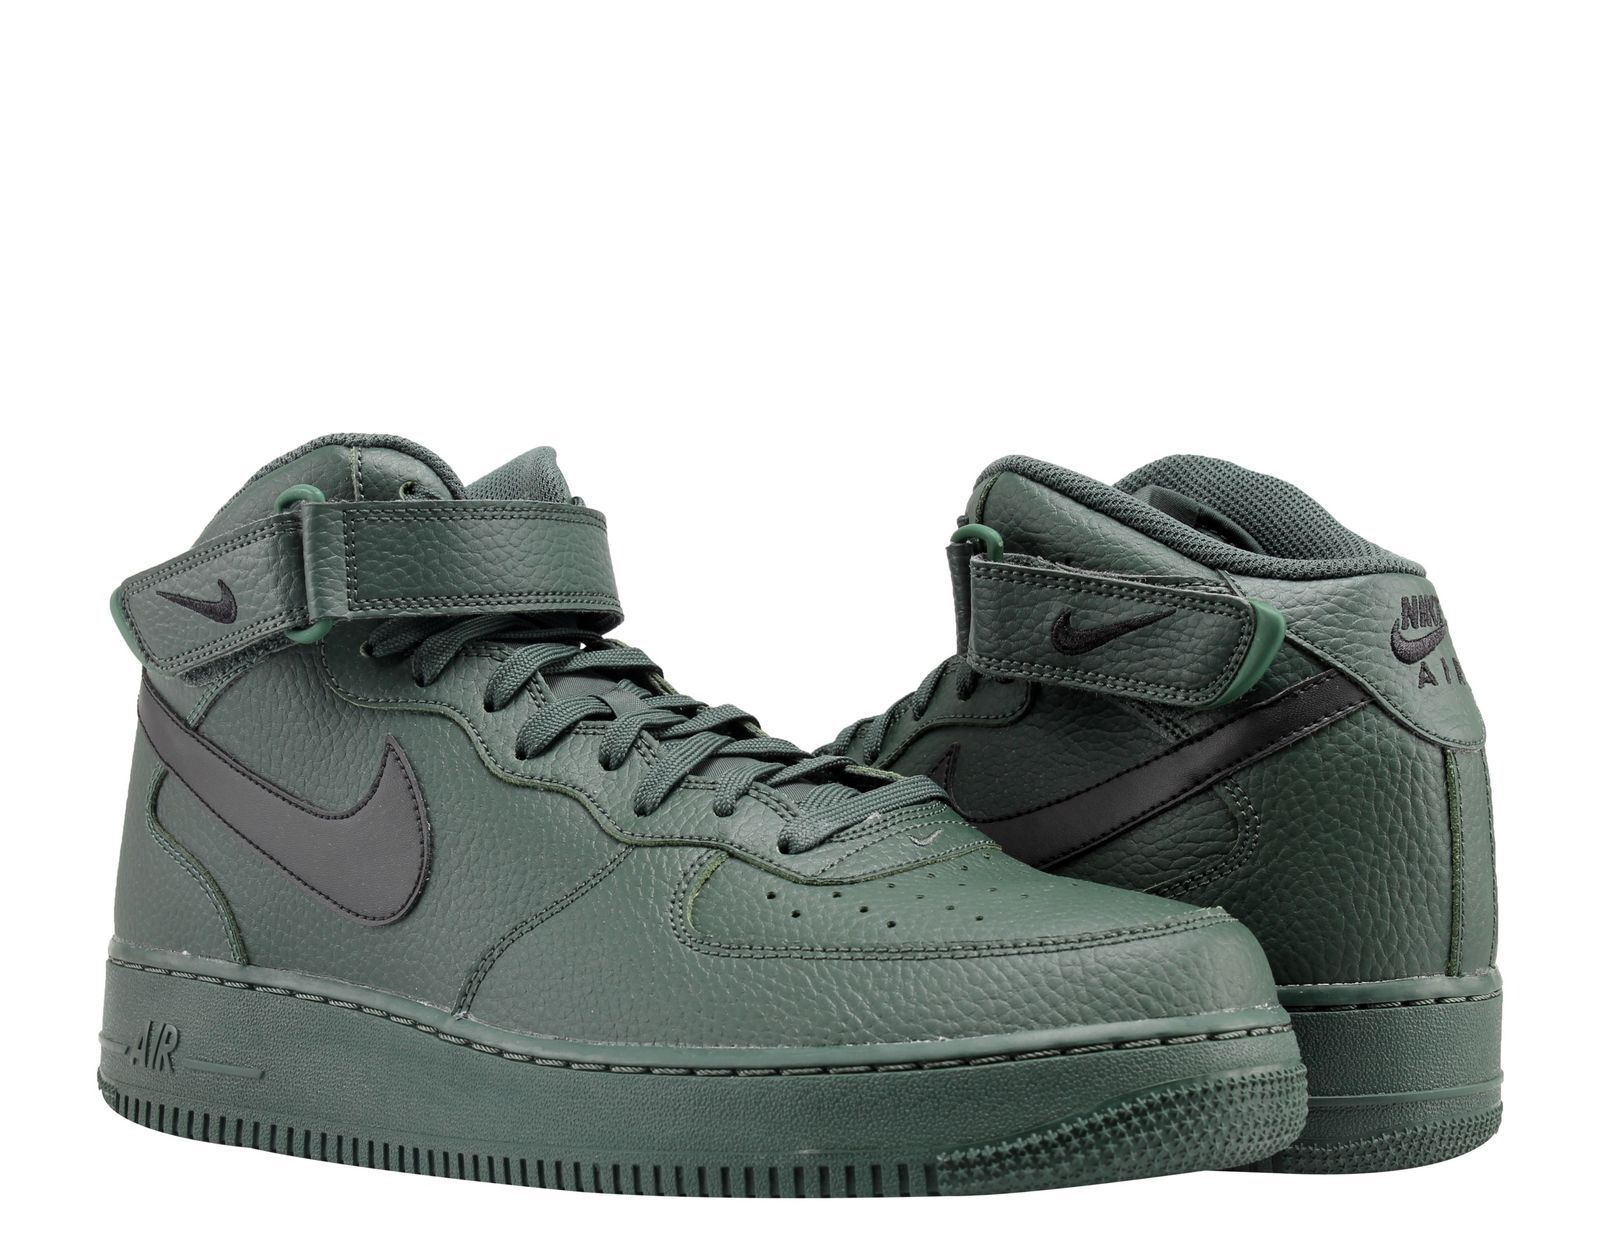 NEW IN BOX NIKE AIR FORCE FORCE FORCE 1 MID '07 verde   nero SWOOSH uomo Dimensione 8.5 scarpe afb6e0